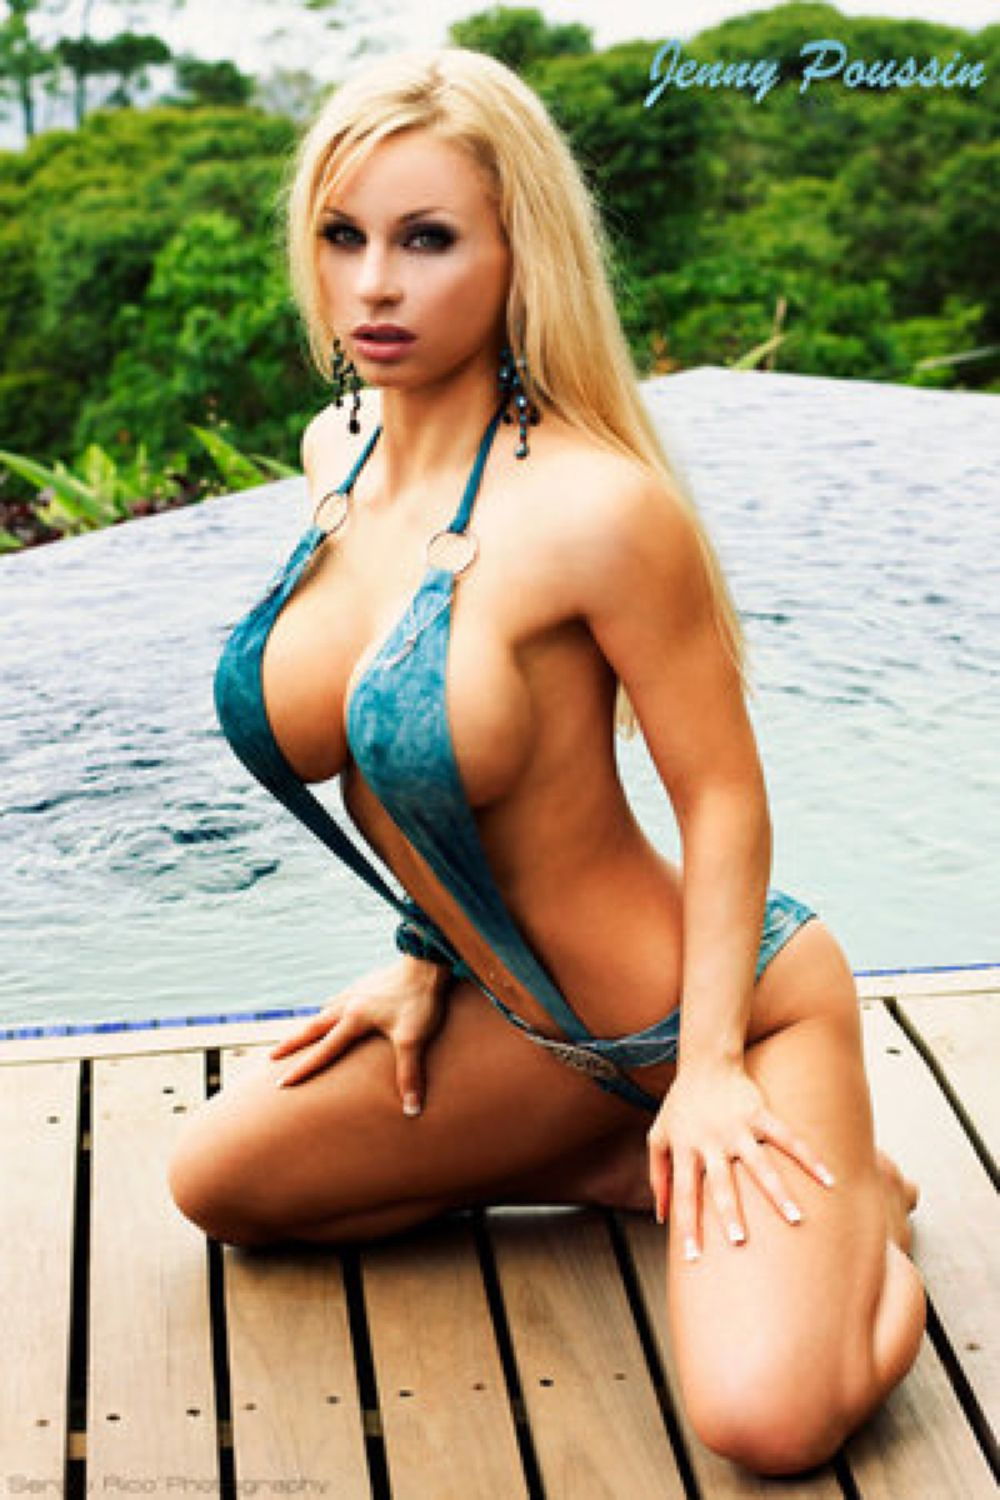 9c8f1e7a58522 Jenny Poussin  Blue Cowgirl Sling  by jennypoussin on  DeviantArt ...